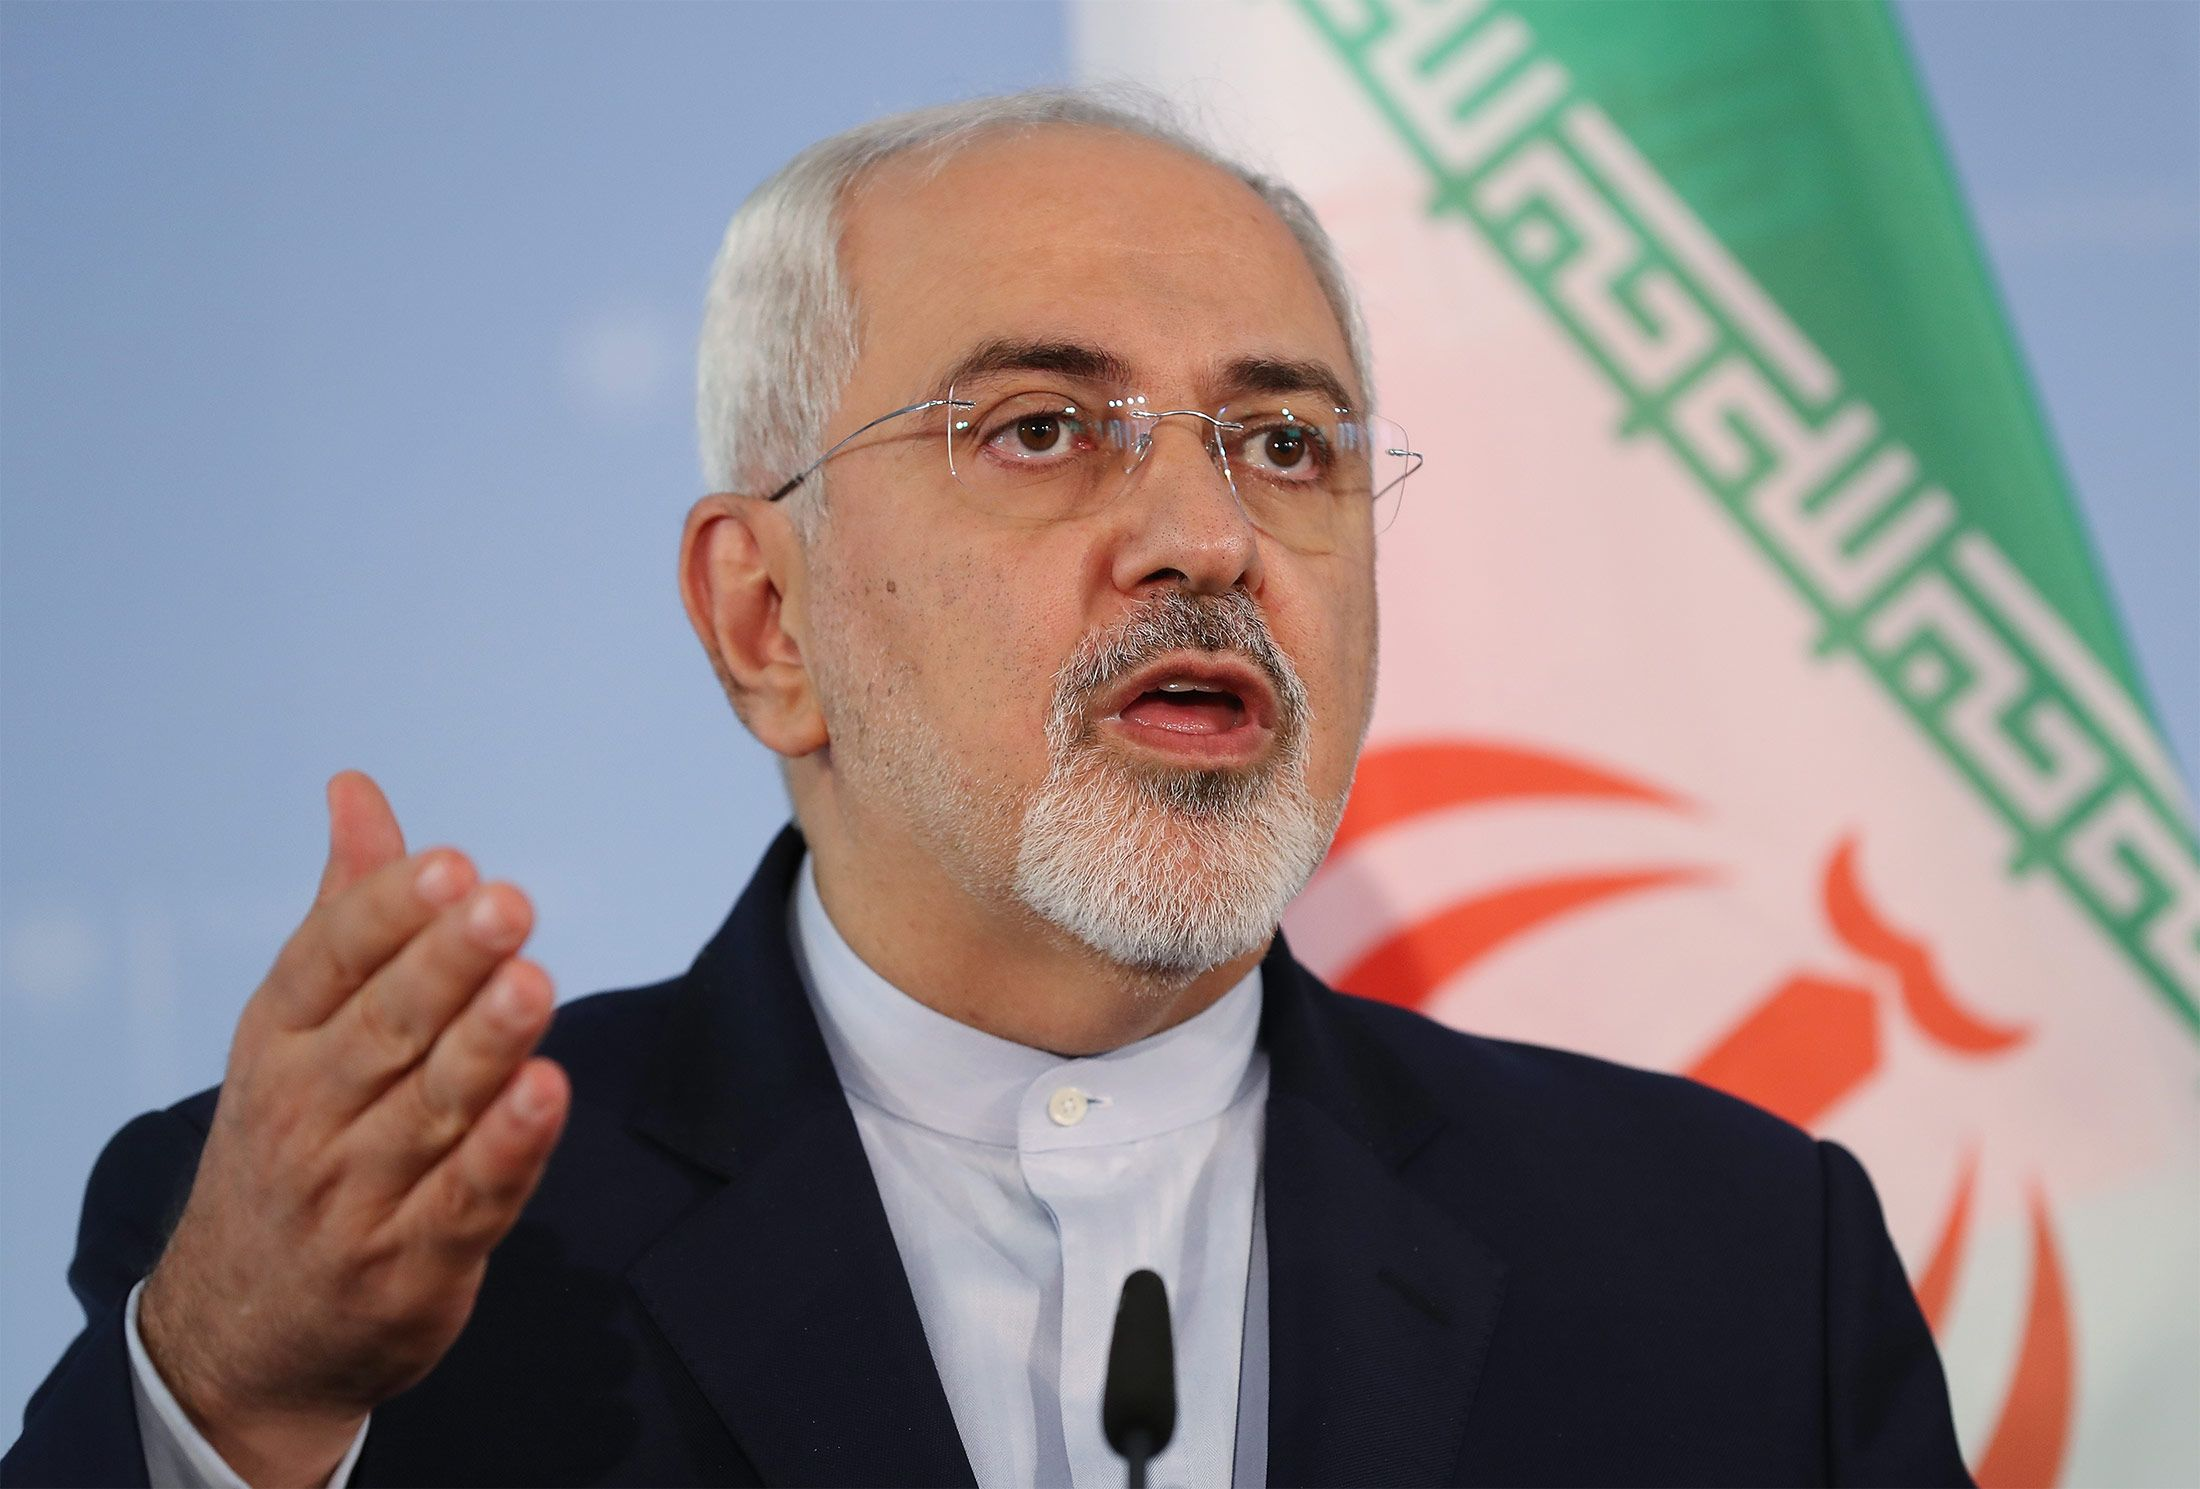 Iran Knows It Cant Bet on Trump 2020 Defeat as Sanctions Bite